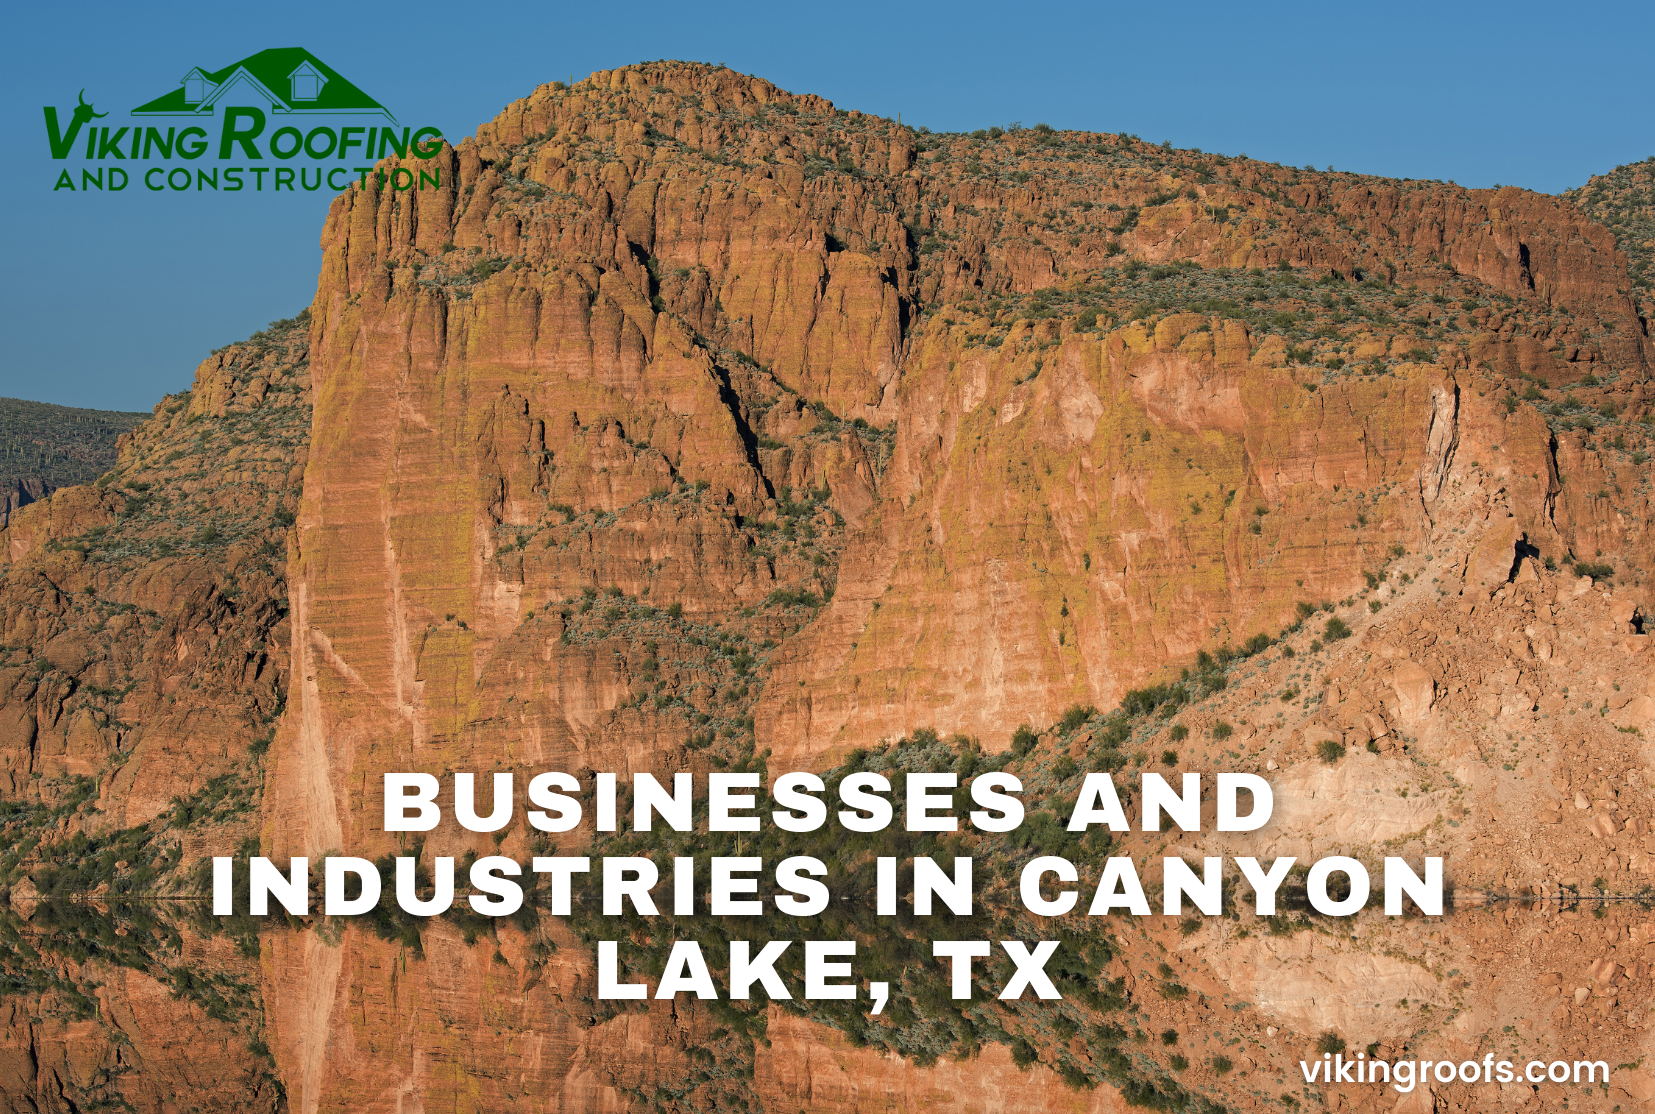 Viking Roofing - Businesses and Industries in Canyon Lake, TX